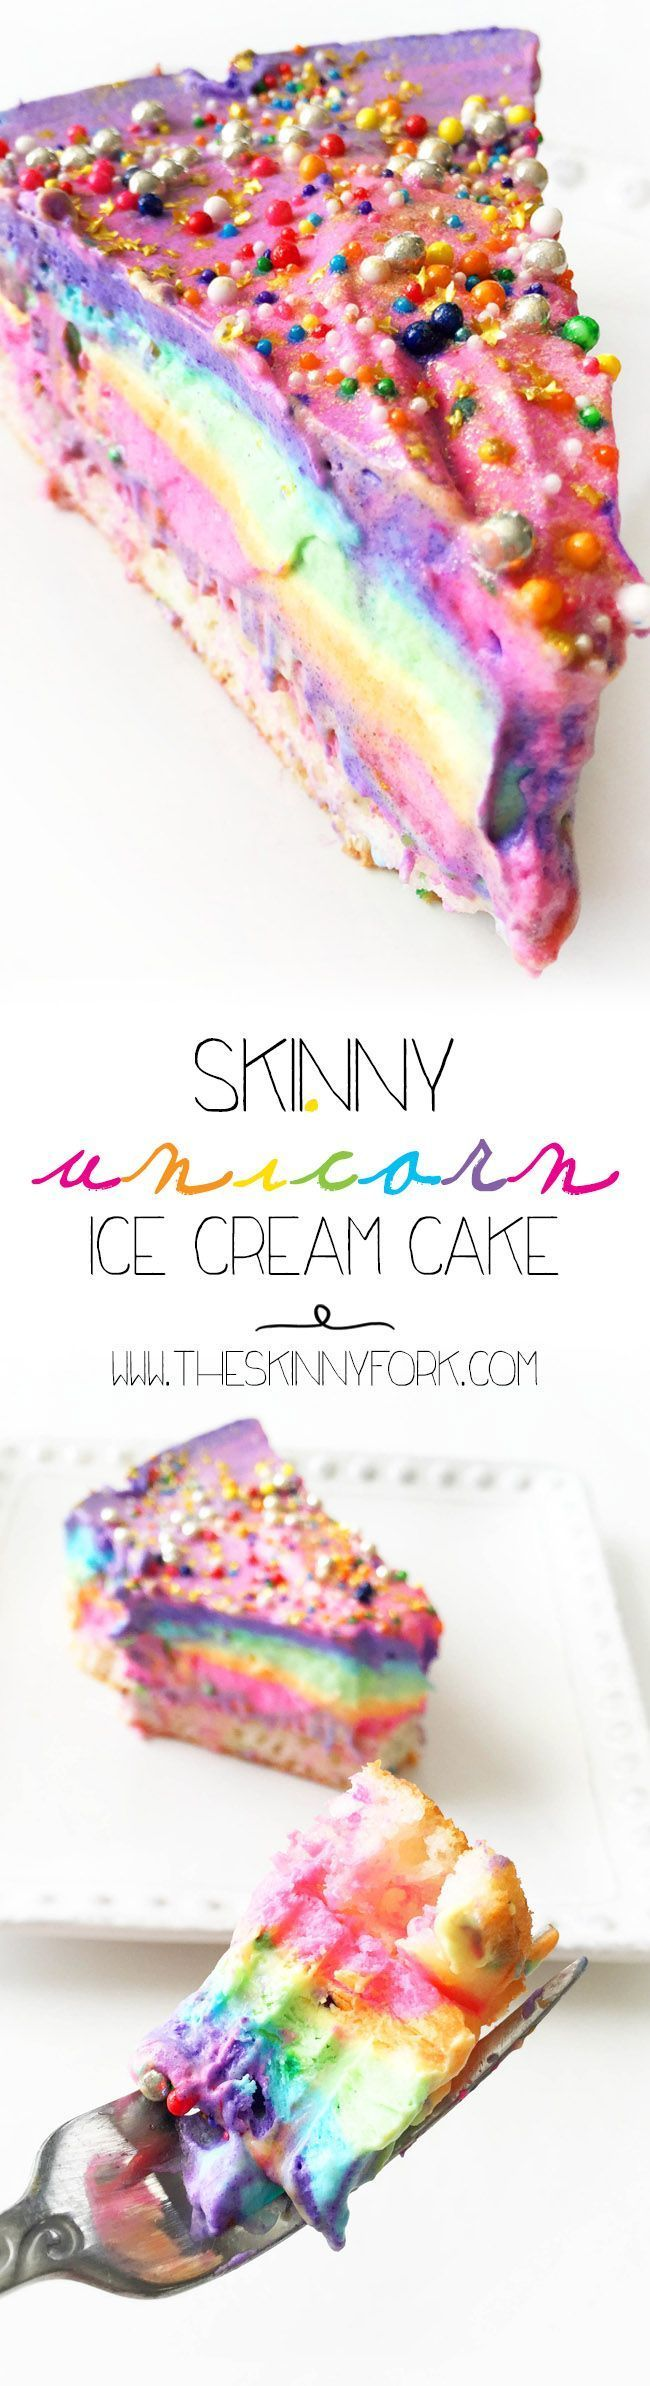 Check out this Skinny Unicorn Ice Cream Cake to add some much needed color, sparkle, and joy to your day! Don't worry, this ice cream cake is super easy to make using /curiouscreamery/ Ice Cream Cake Mix! #Ad #CuriousCreamery http://TheSkinnyFork.com | Skinny & Healthy Recipes